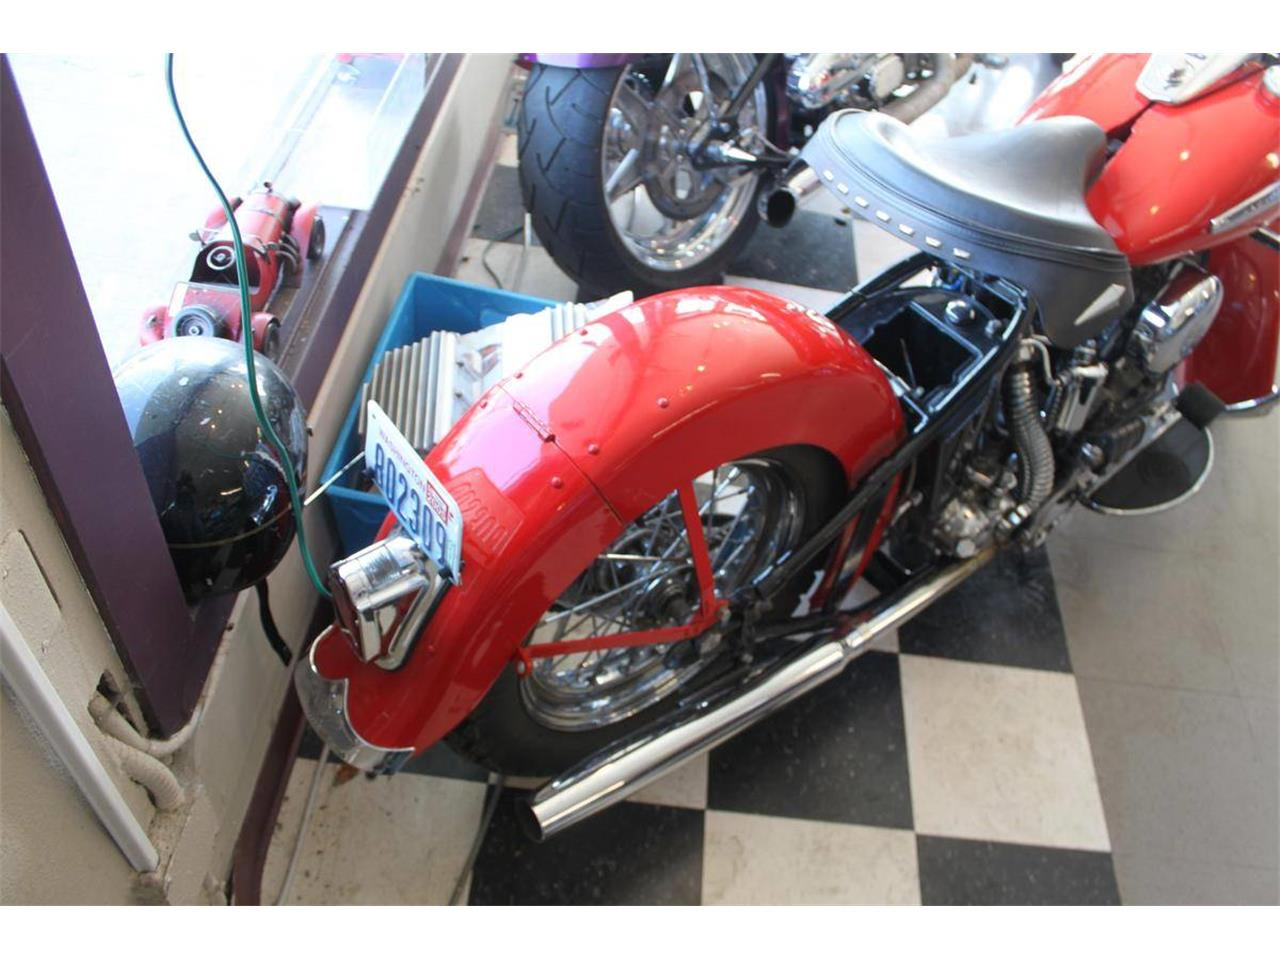 1950 Harley-Davidson Motorcycle for sale in Carnation, WA – photo 11